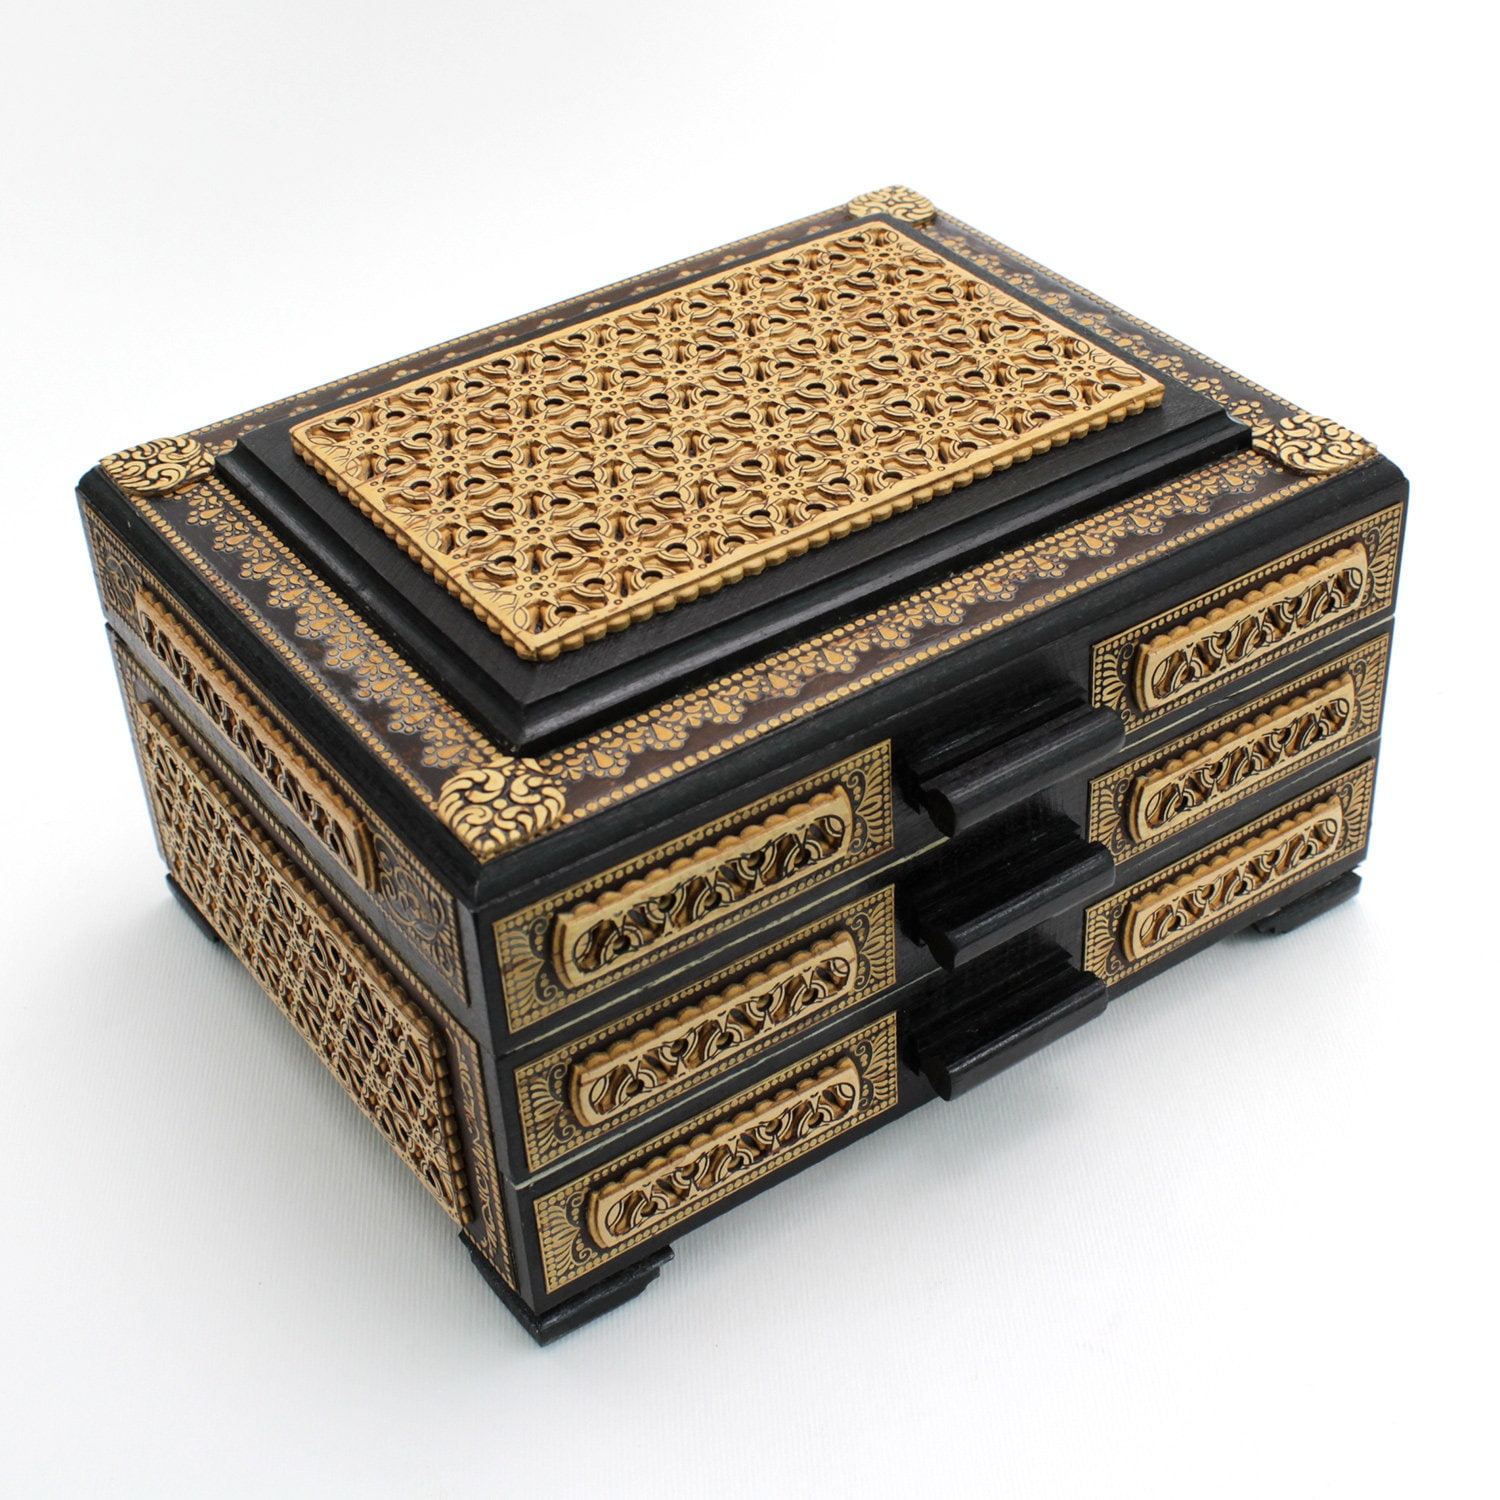 Tabletop wooden chest of drawers for jewelry, inlaid with carved birch bark. Has three pull-out tiers, velvet fabric inside. View 2